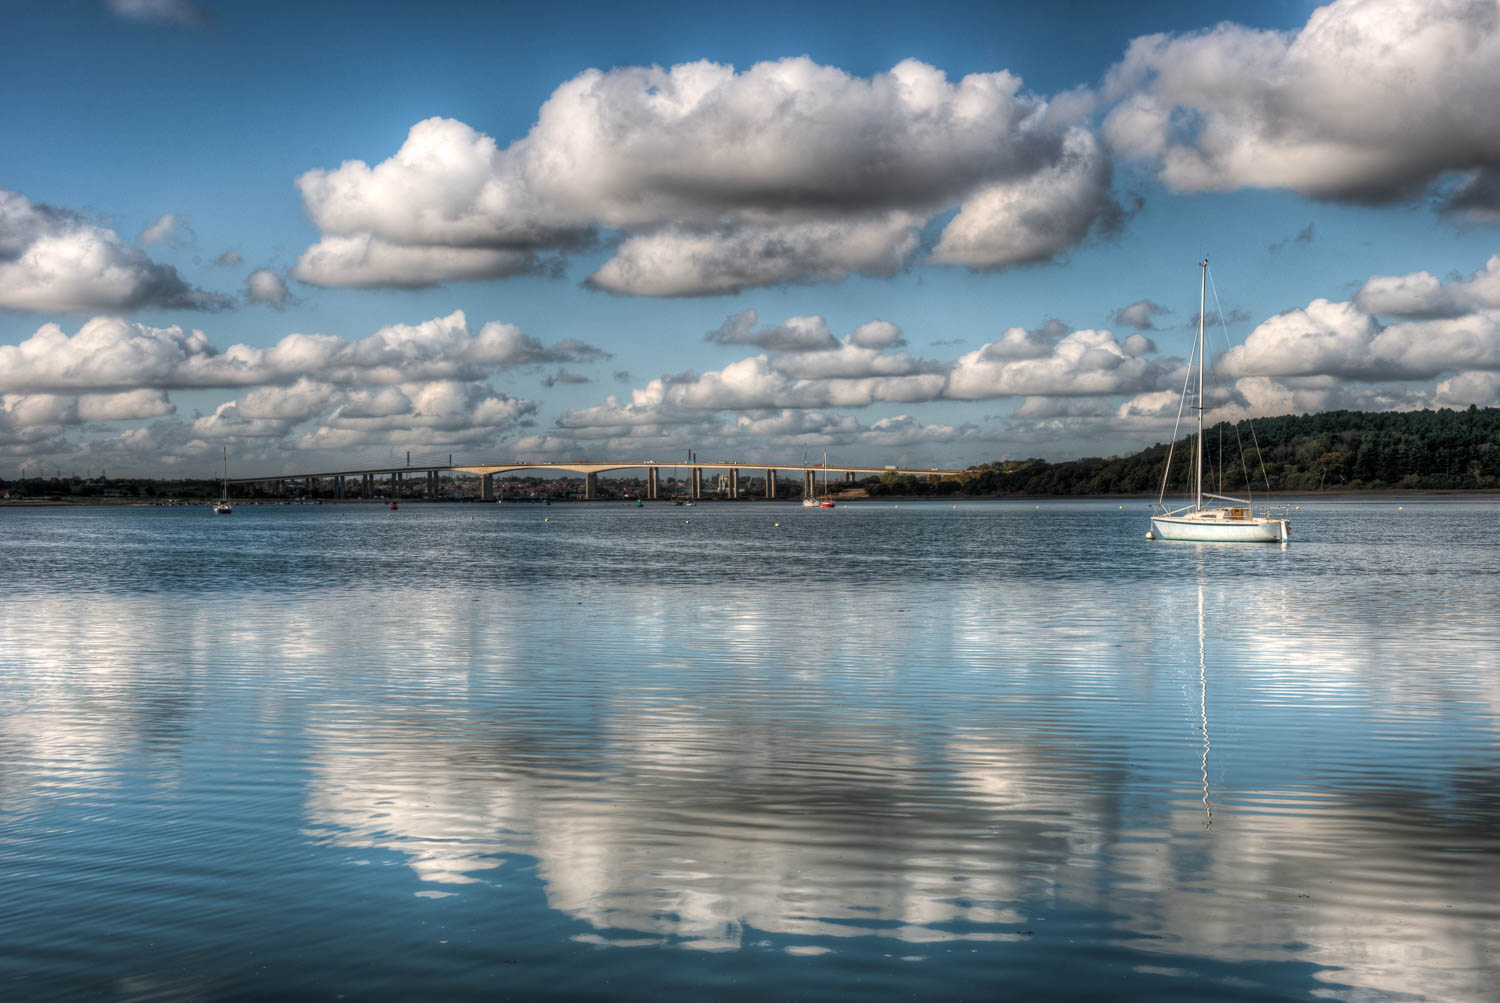 The River Orwell